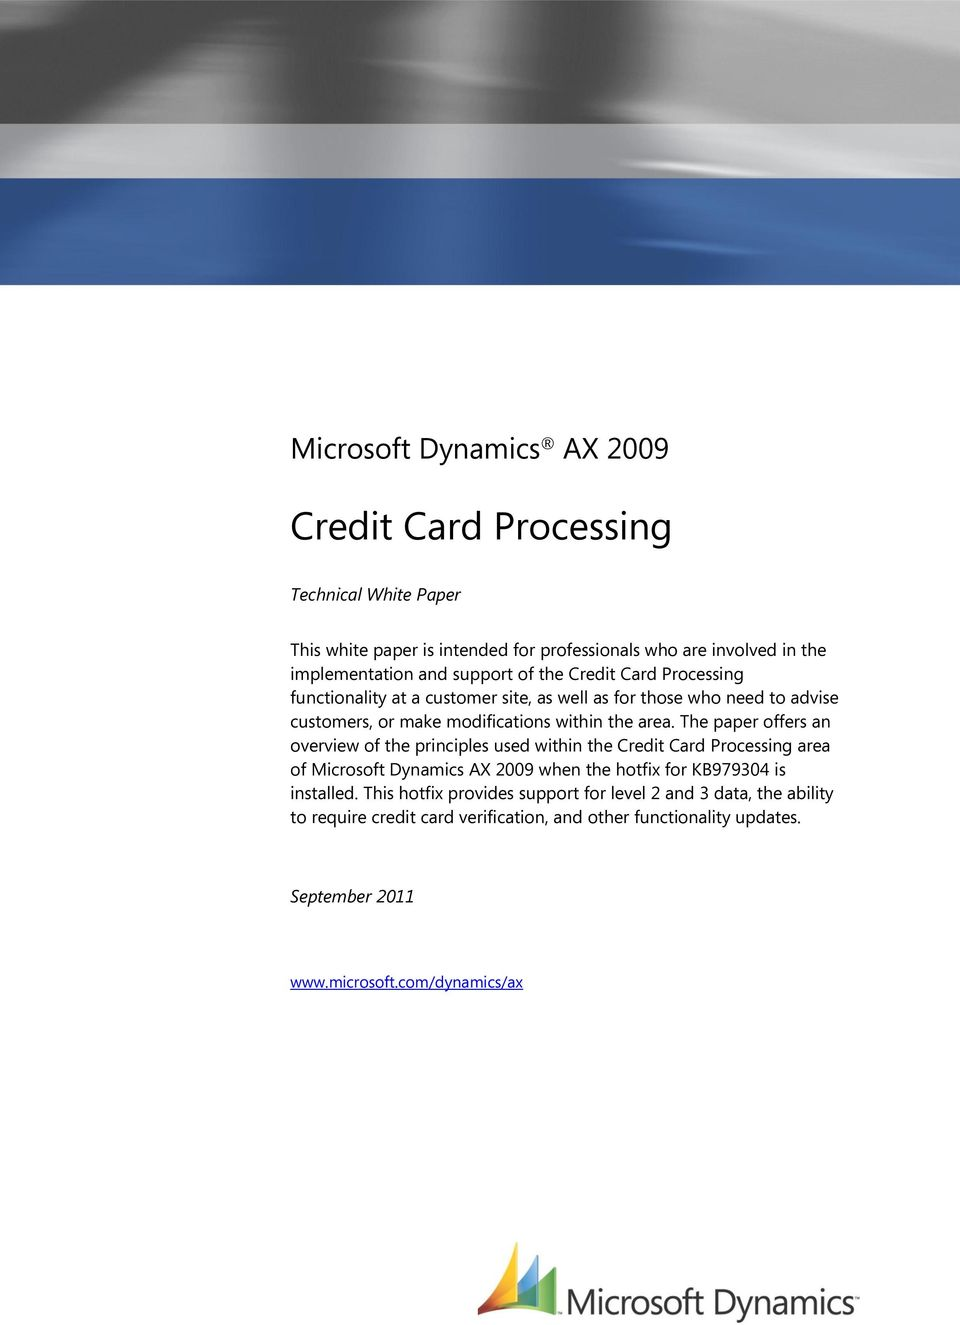 The paper offers an overview of the principles used within the Credit Card Processing area of Microsoft Dynamics AX 2009 when the hotfix for KB979304 is installed.